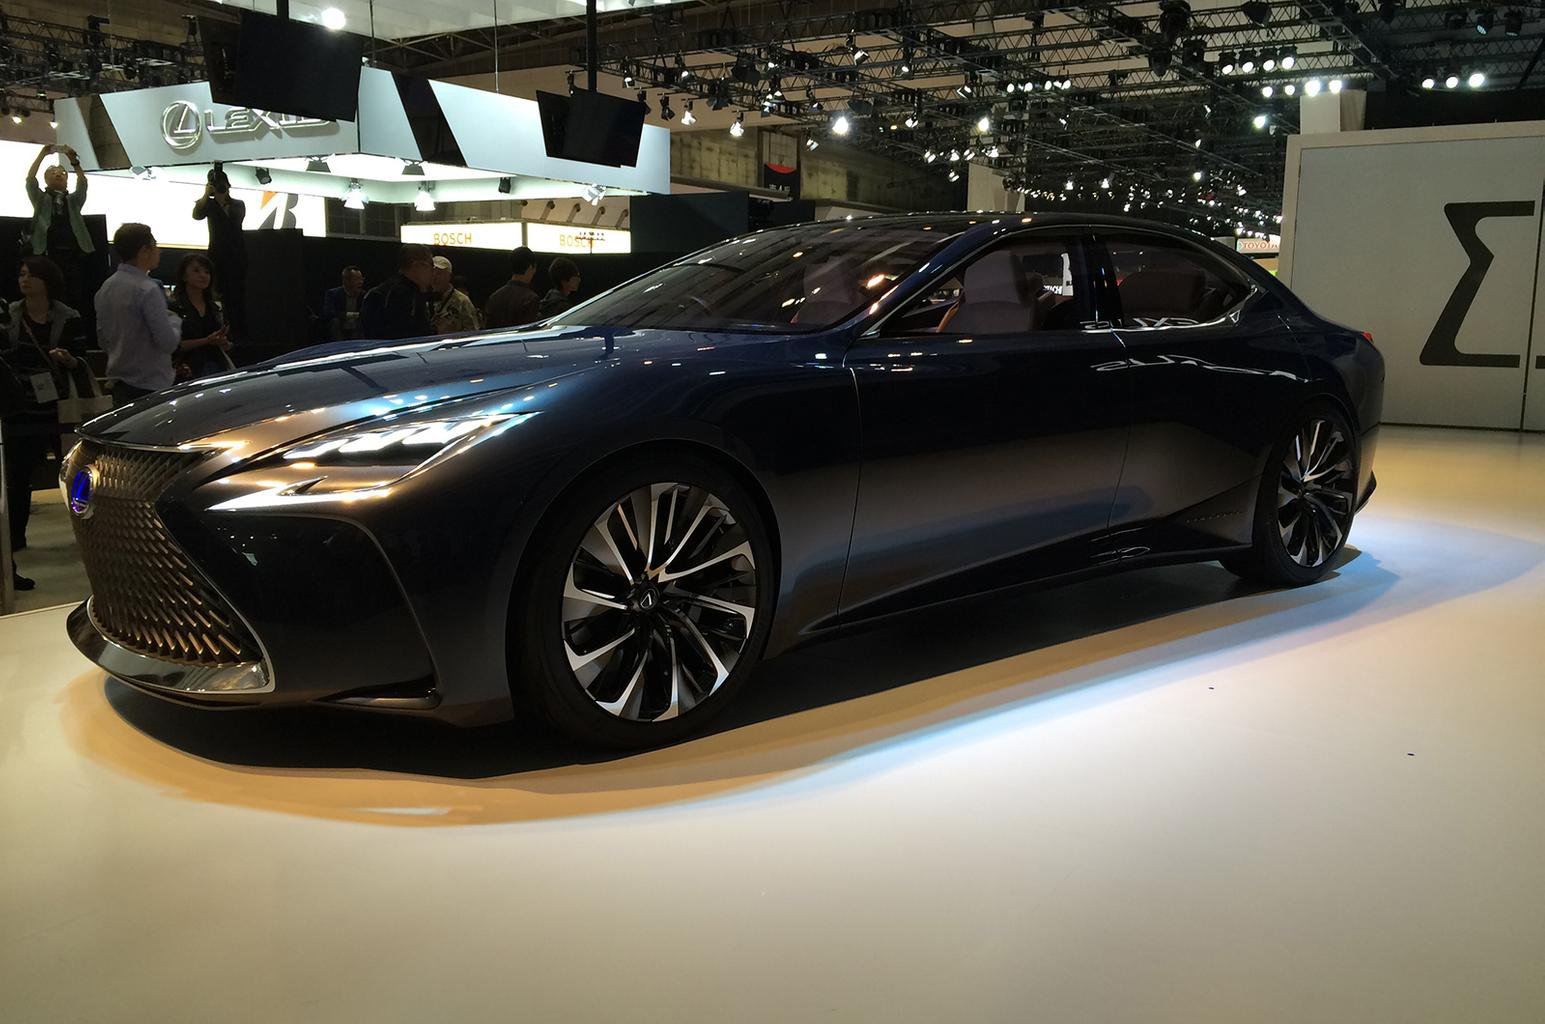 Lexus previews new LS luxury saloon with LF-FC concept